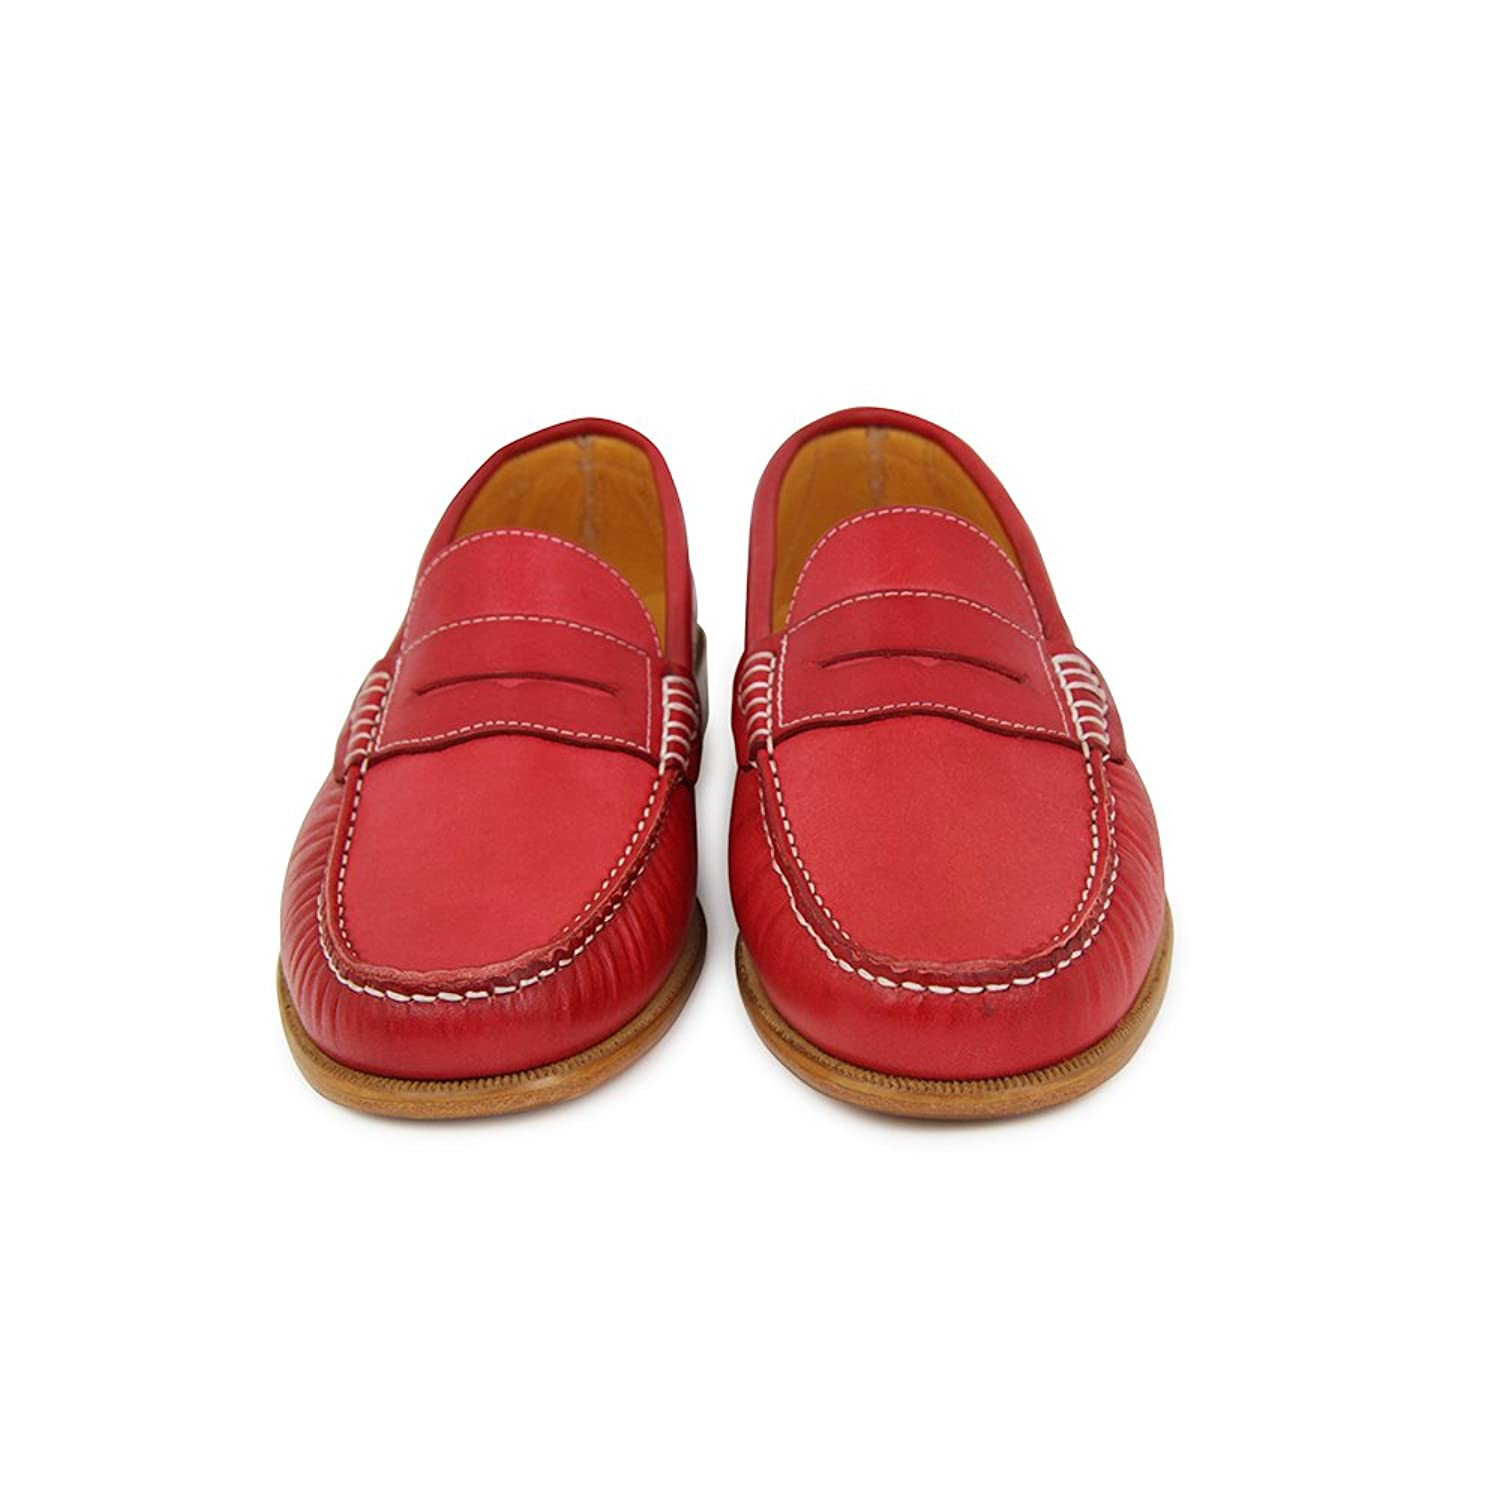 Tambuche Leather Moccasins Premium Shoes High Quality for Men:  Amazon.co.uk: Shoes & Bags